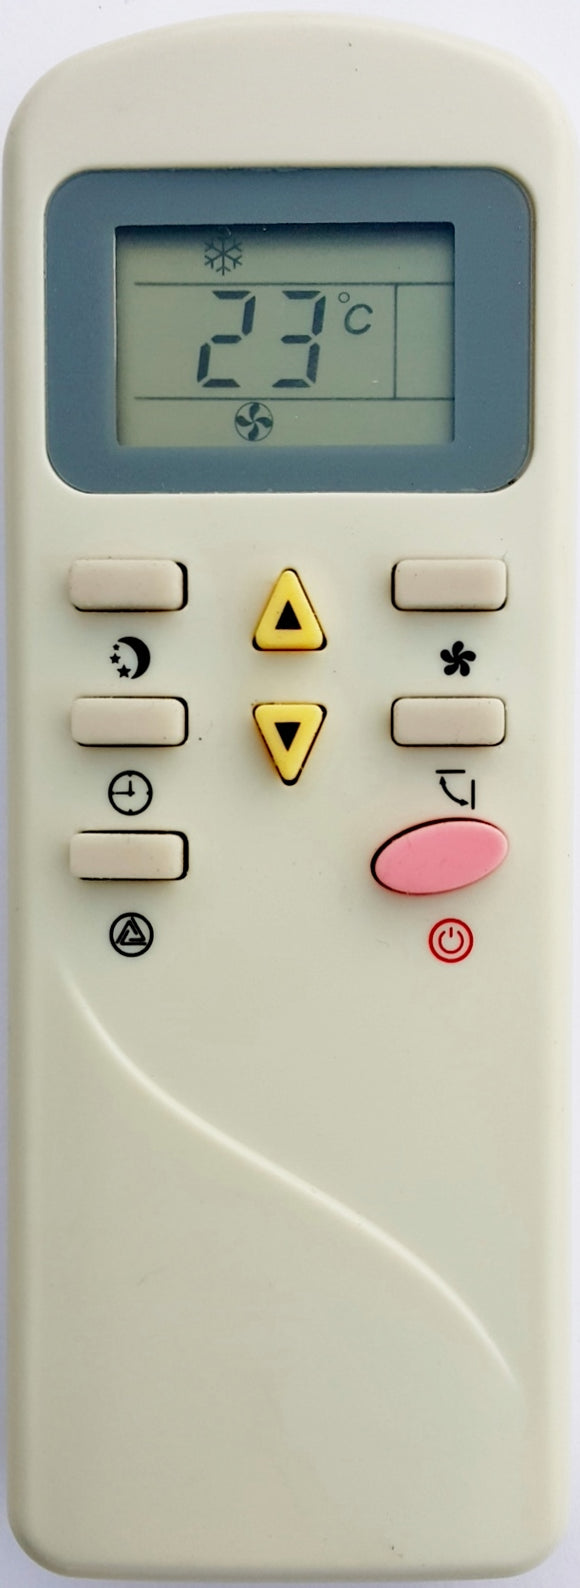 ORIGINAL JBS AIR CONDITIONER REMOTE CONTROL